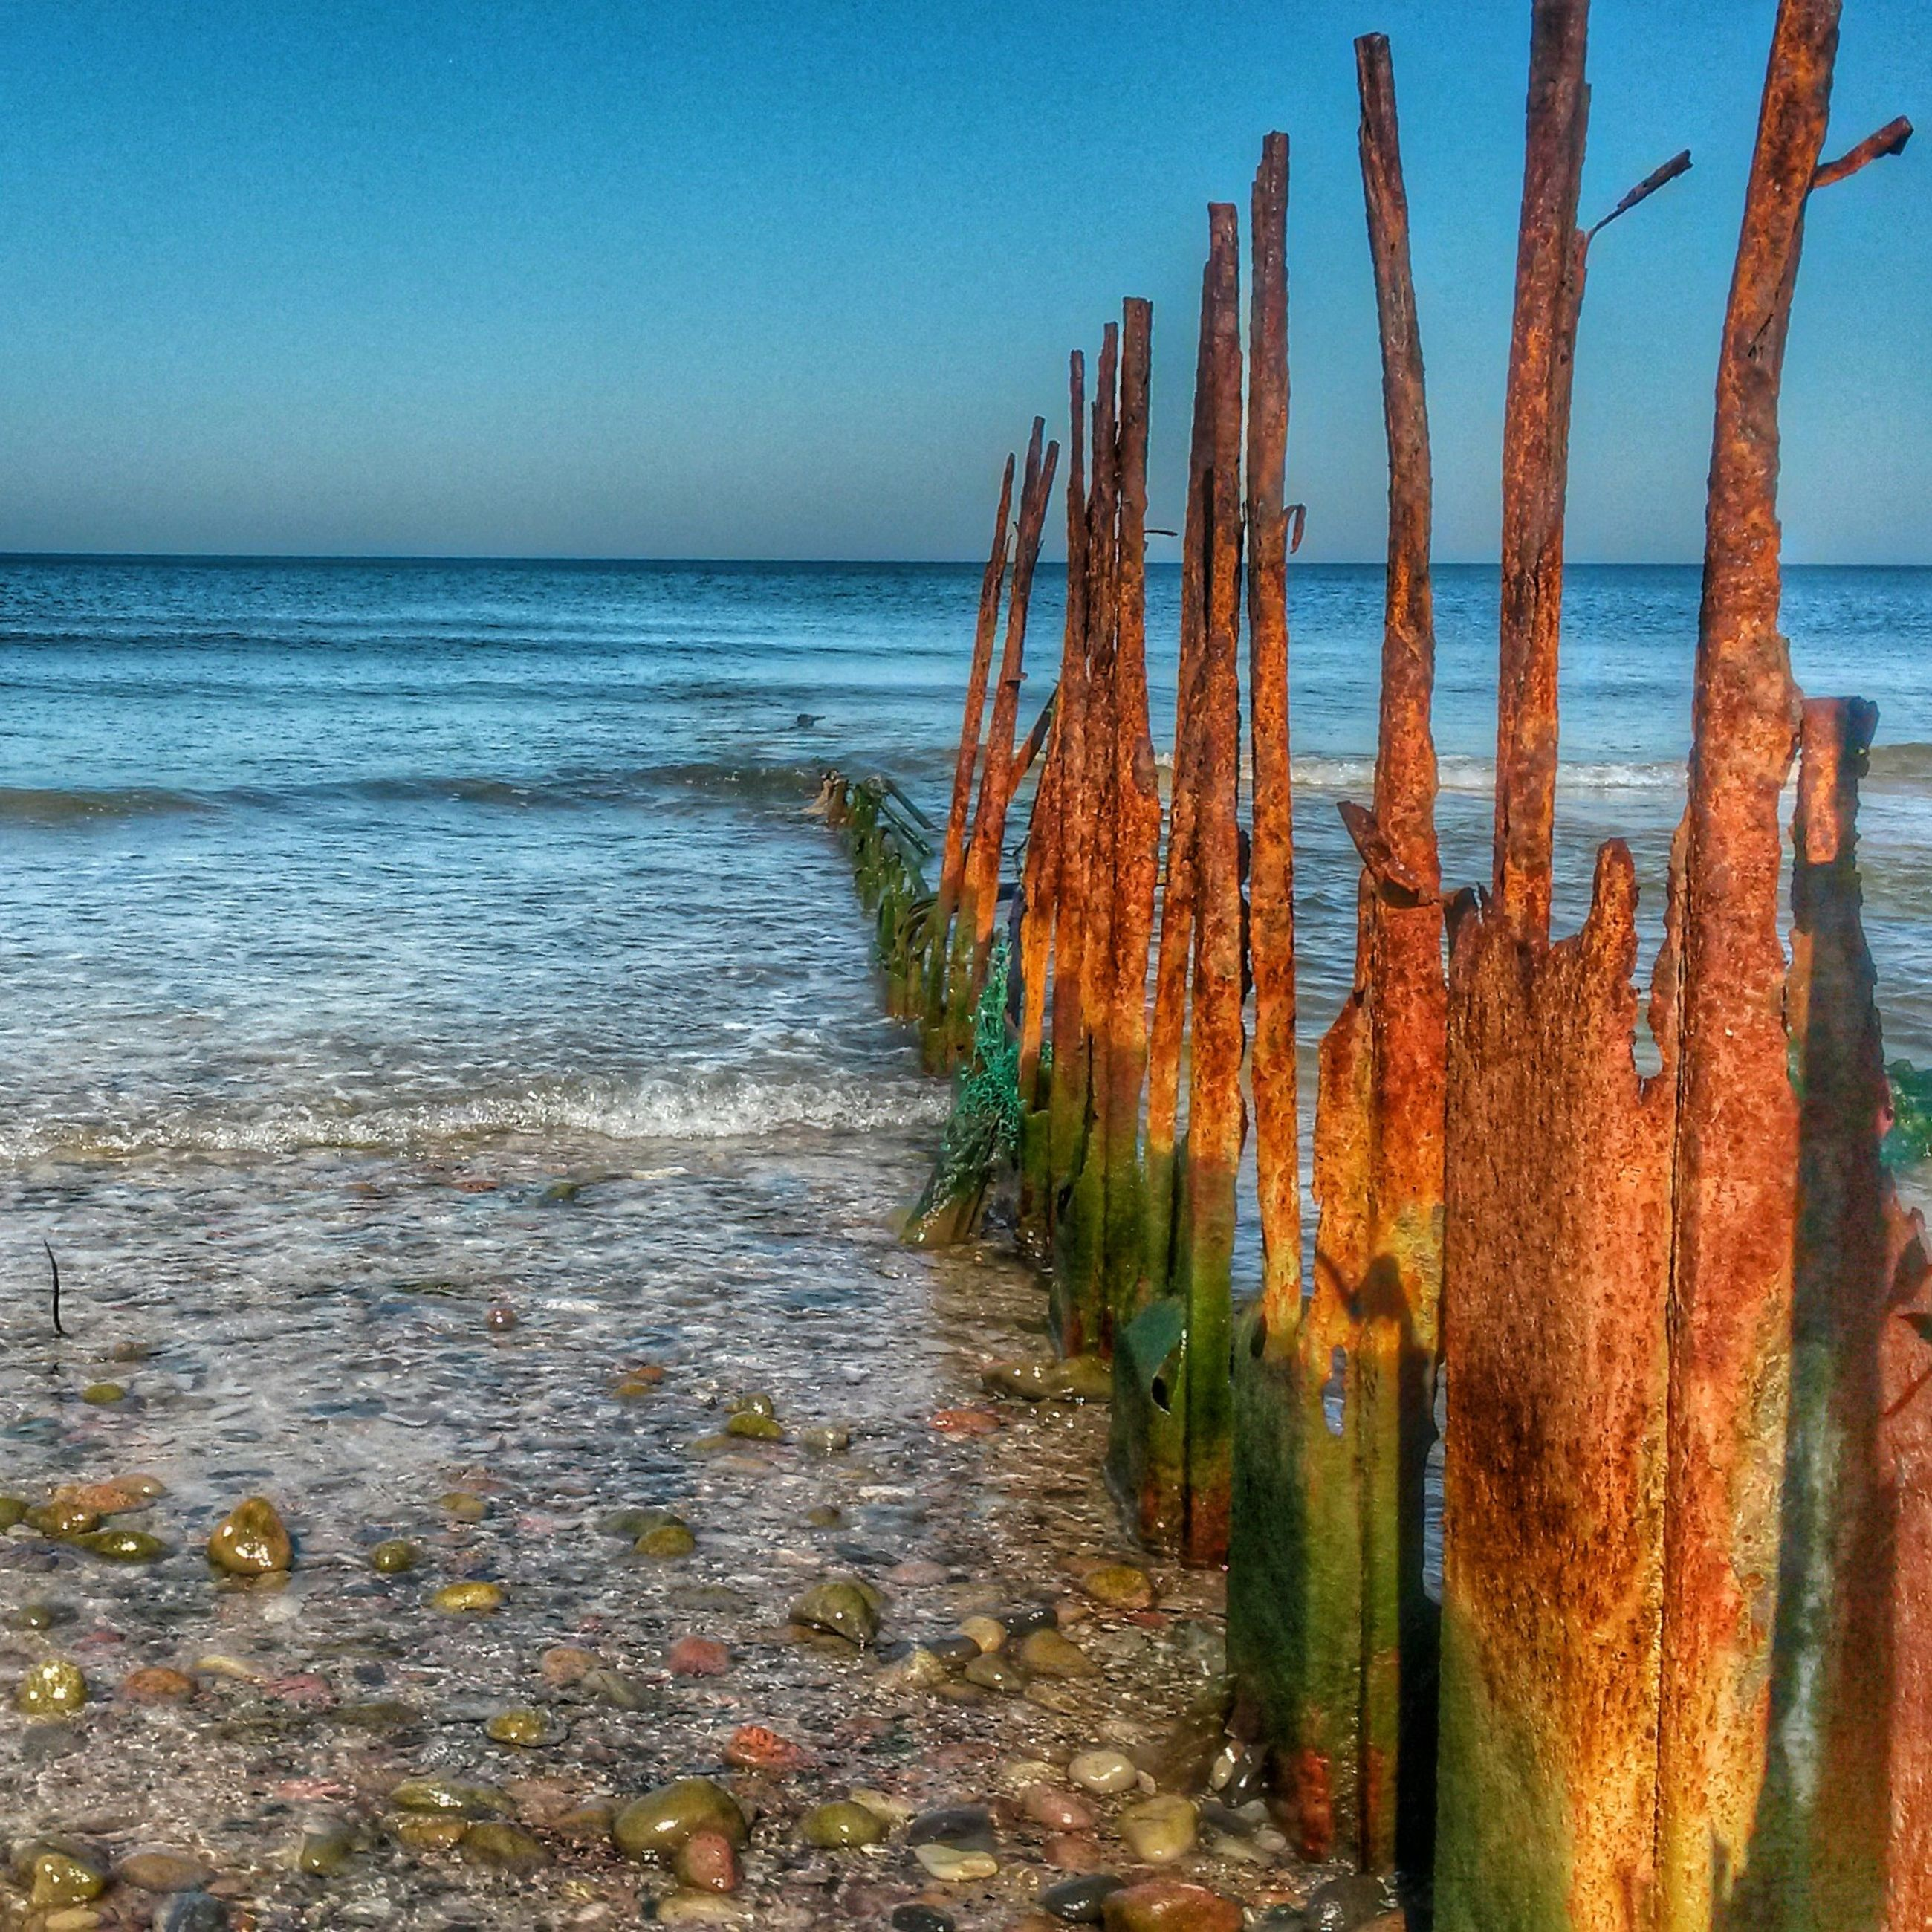 sea, horizon over water, water, beach, tranquil scene, tranquility, clear sky, beauty in nature, nature, scenics, blue, shore, plant, sky, growth, the way forward, sand, idyllic, copy space, day